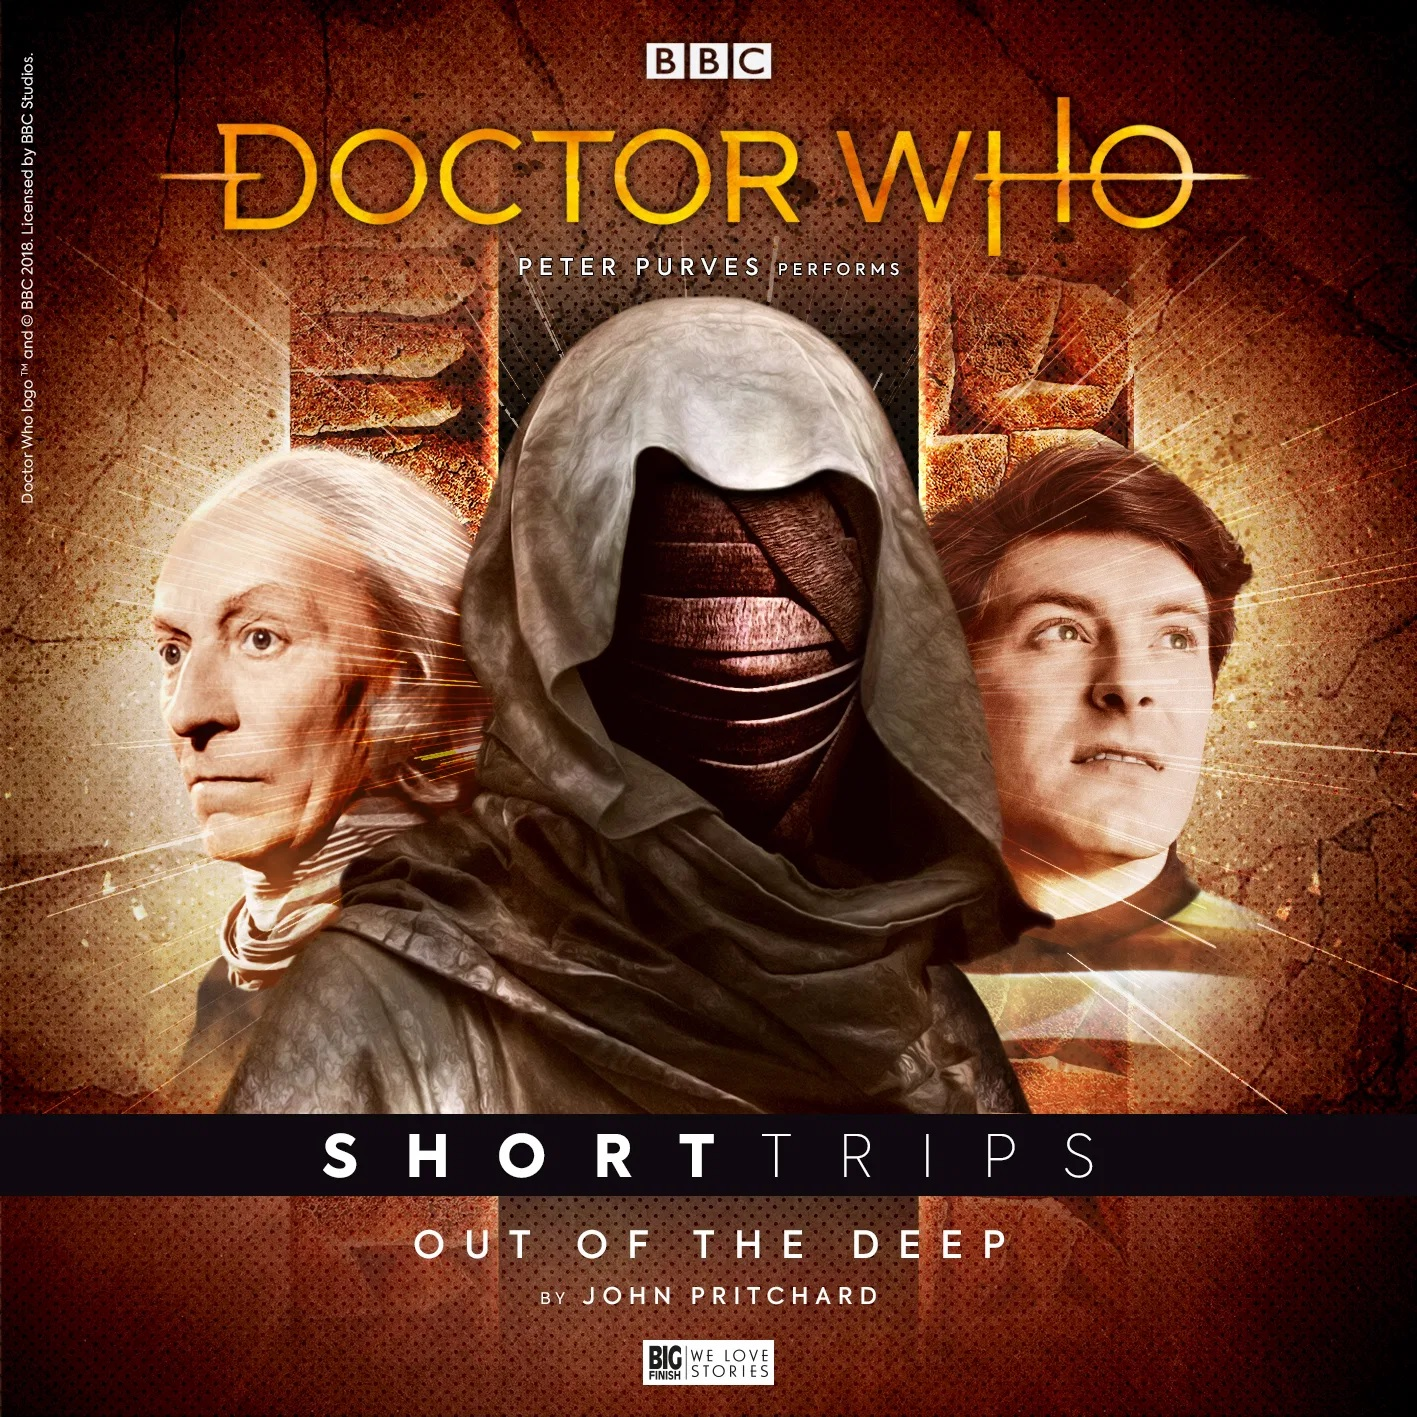 Reviewed: Big Finish's Doctor Who Short Trips – Out of the Deep